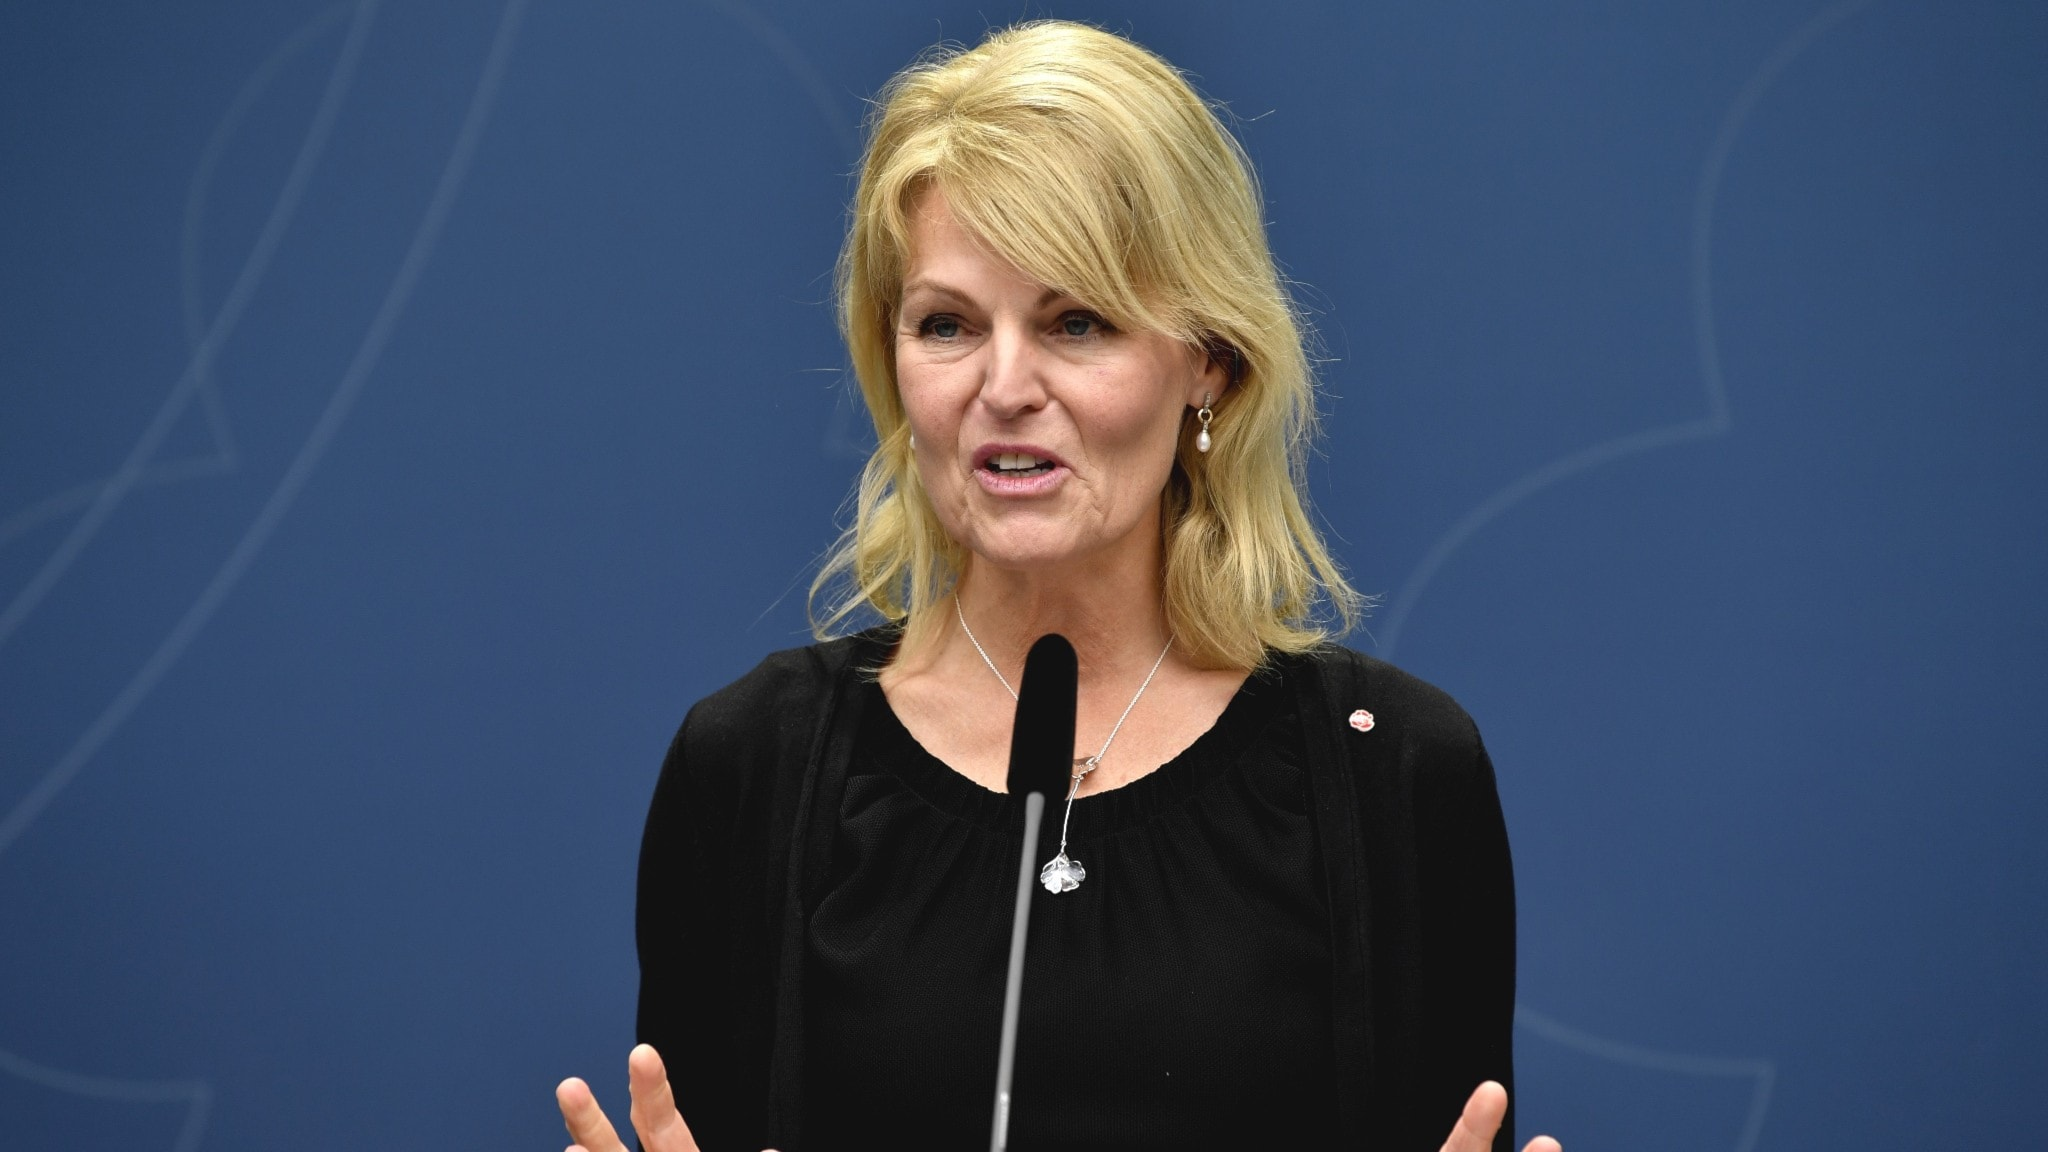 Sweden gathers trade ministers in free-trade push - Radio Sweden